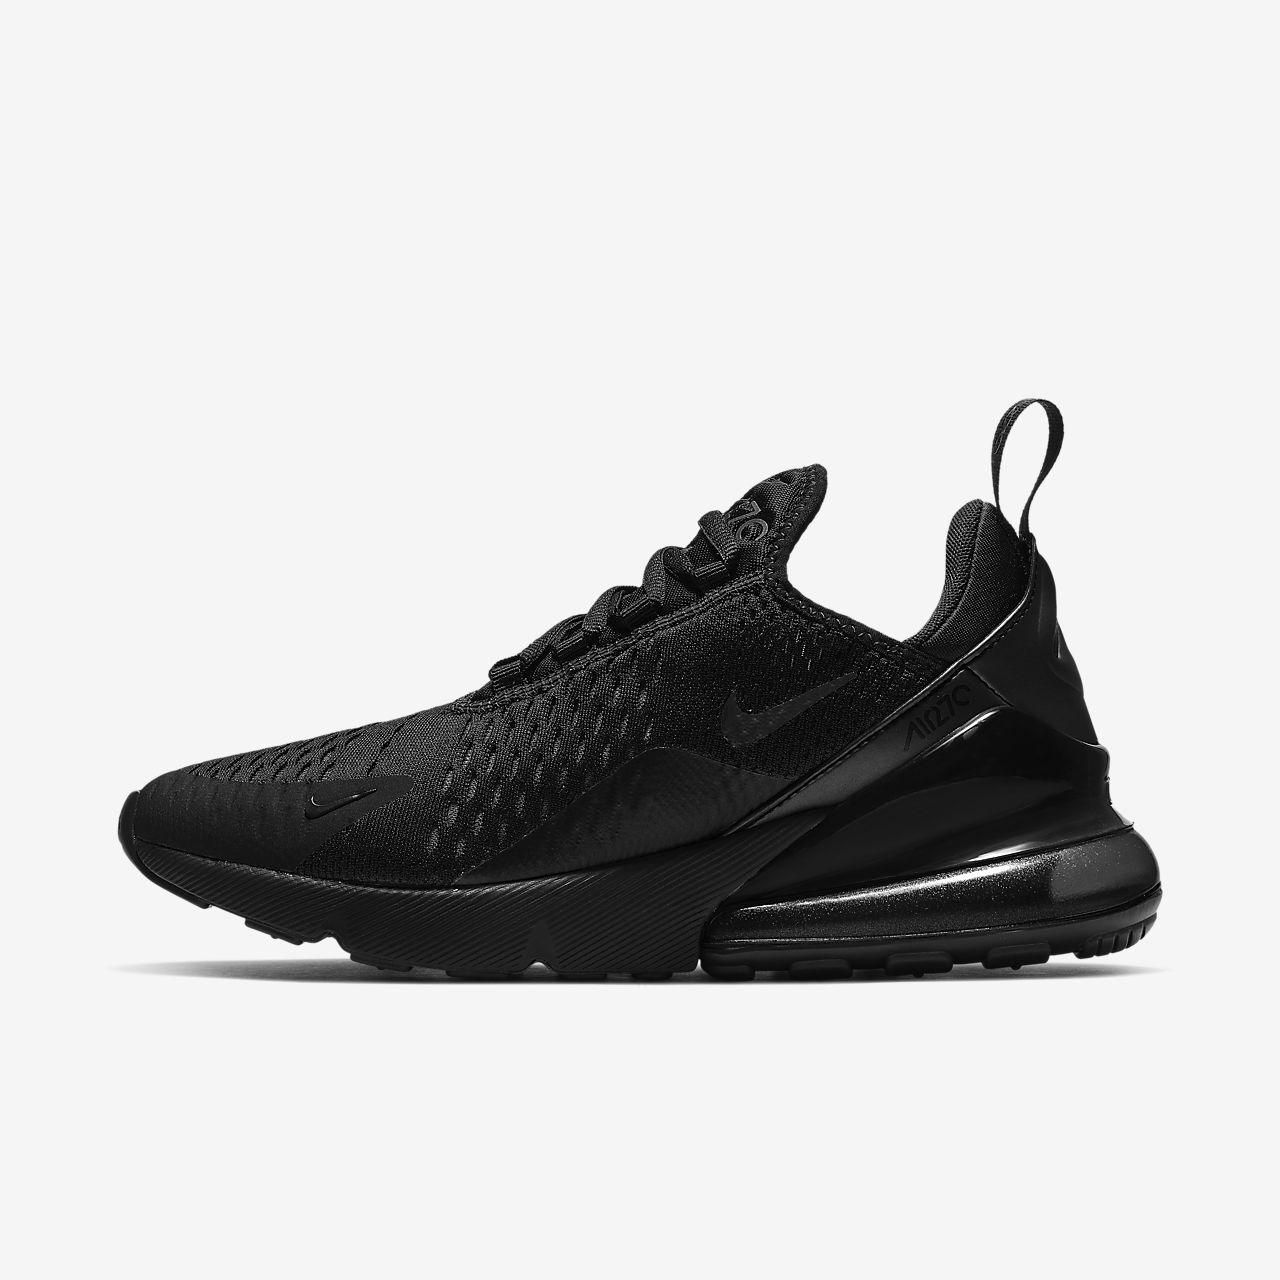 sports shoes aac95 21f63 Nike Air Max 270 Women's Shoe